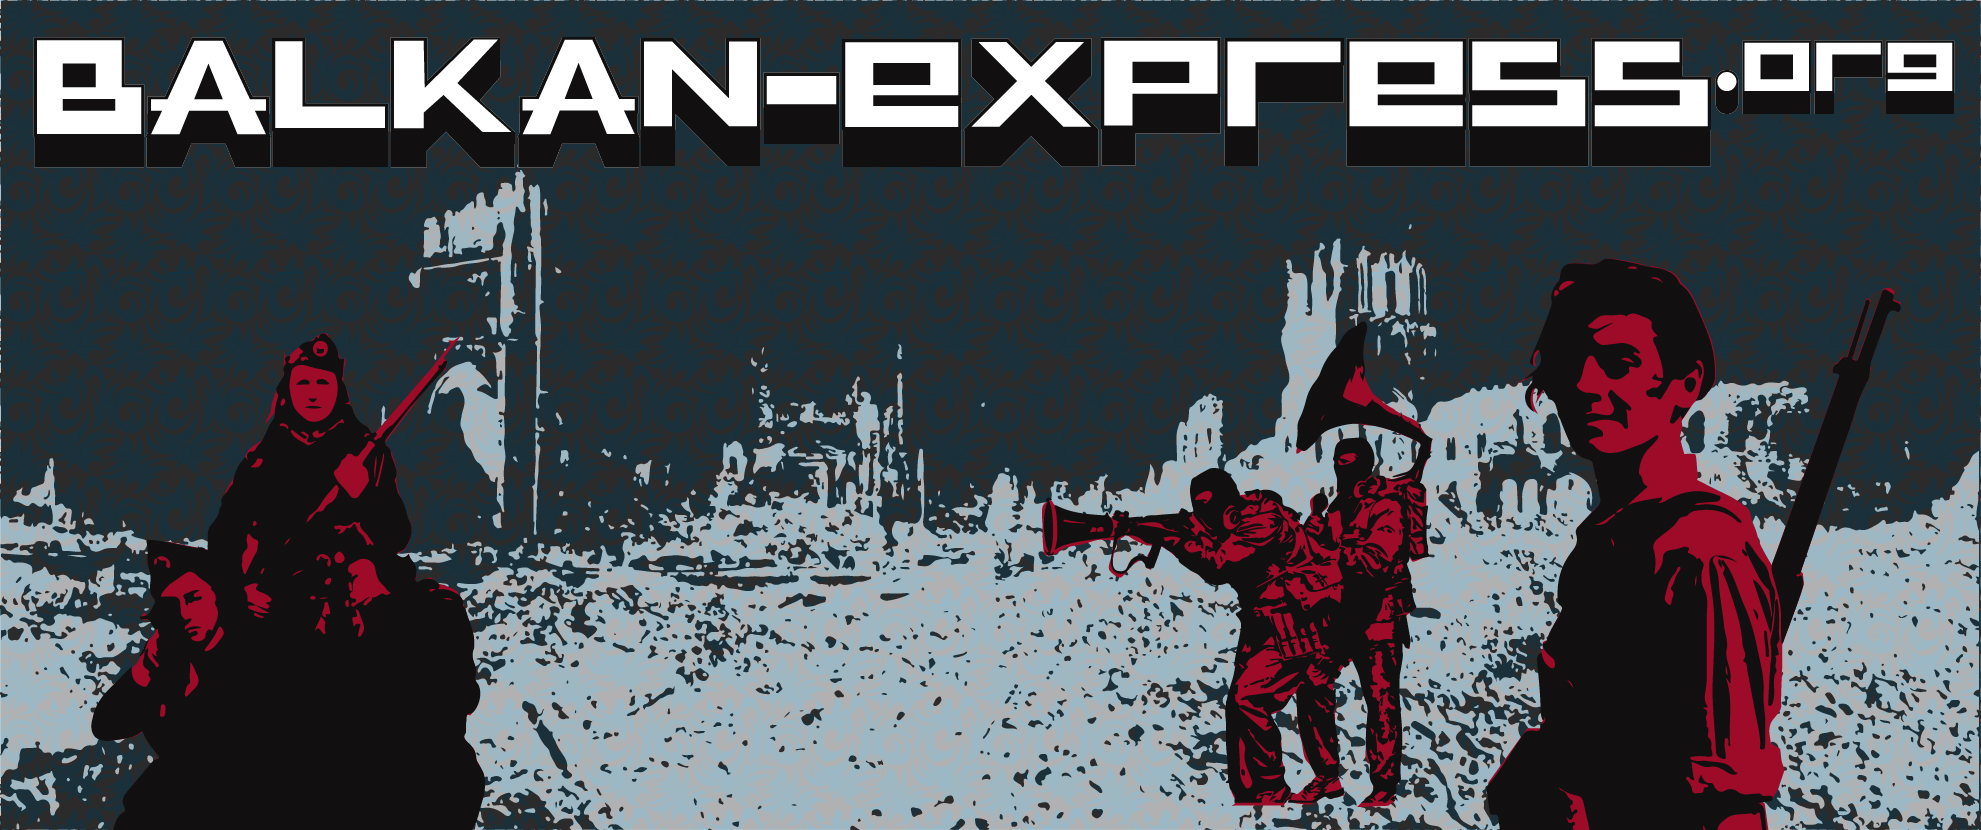 Balkan-express.org news application and illustrations